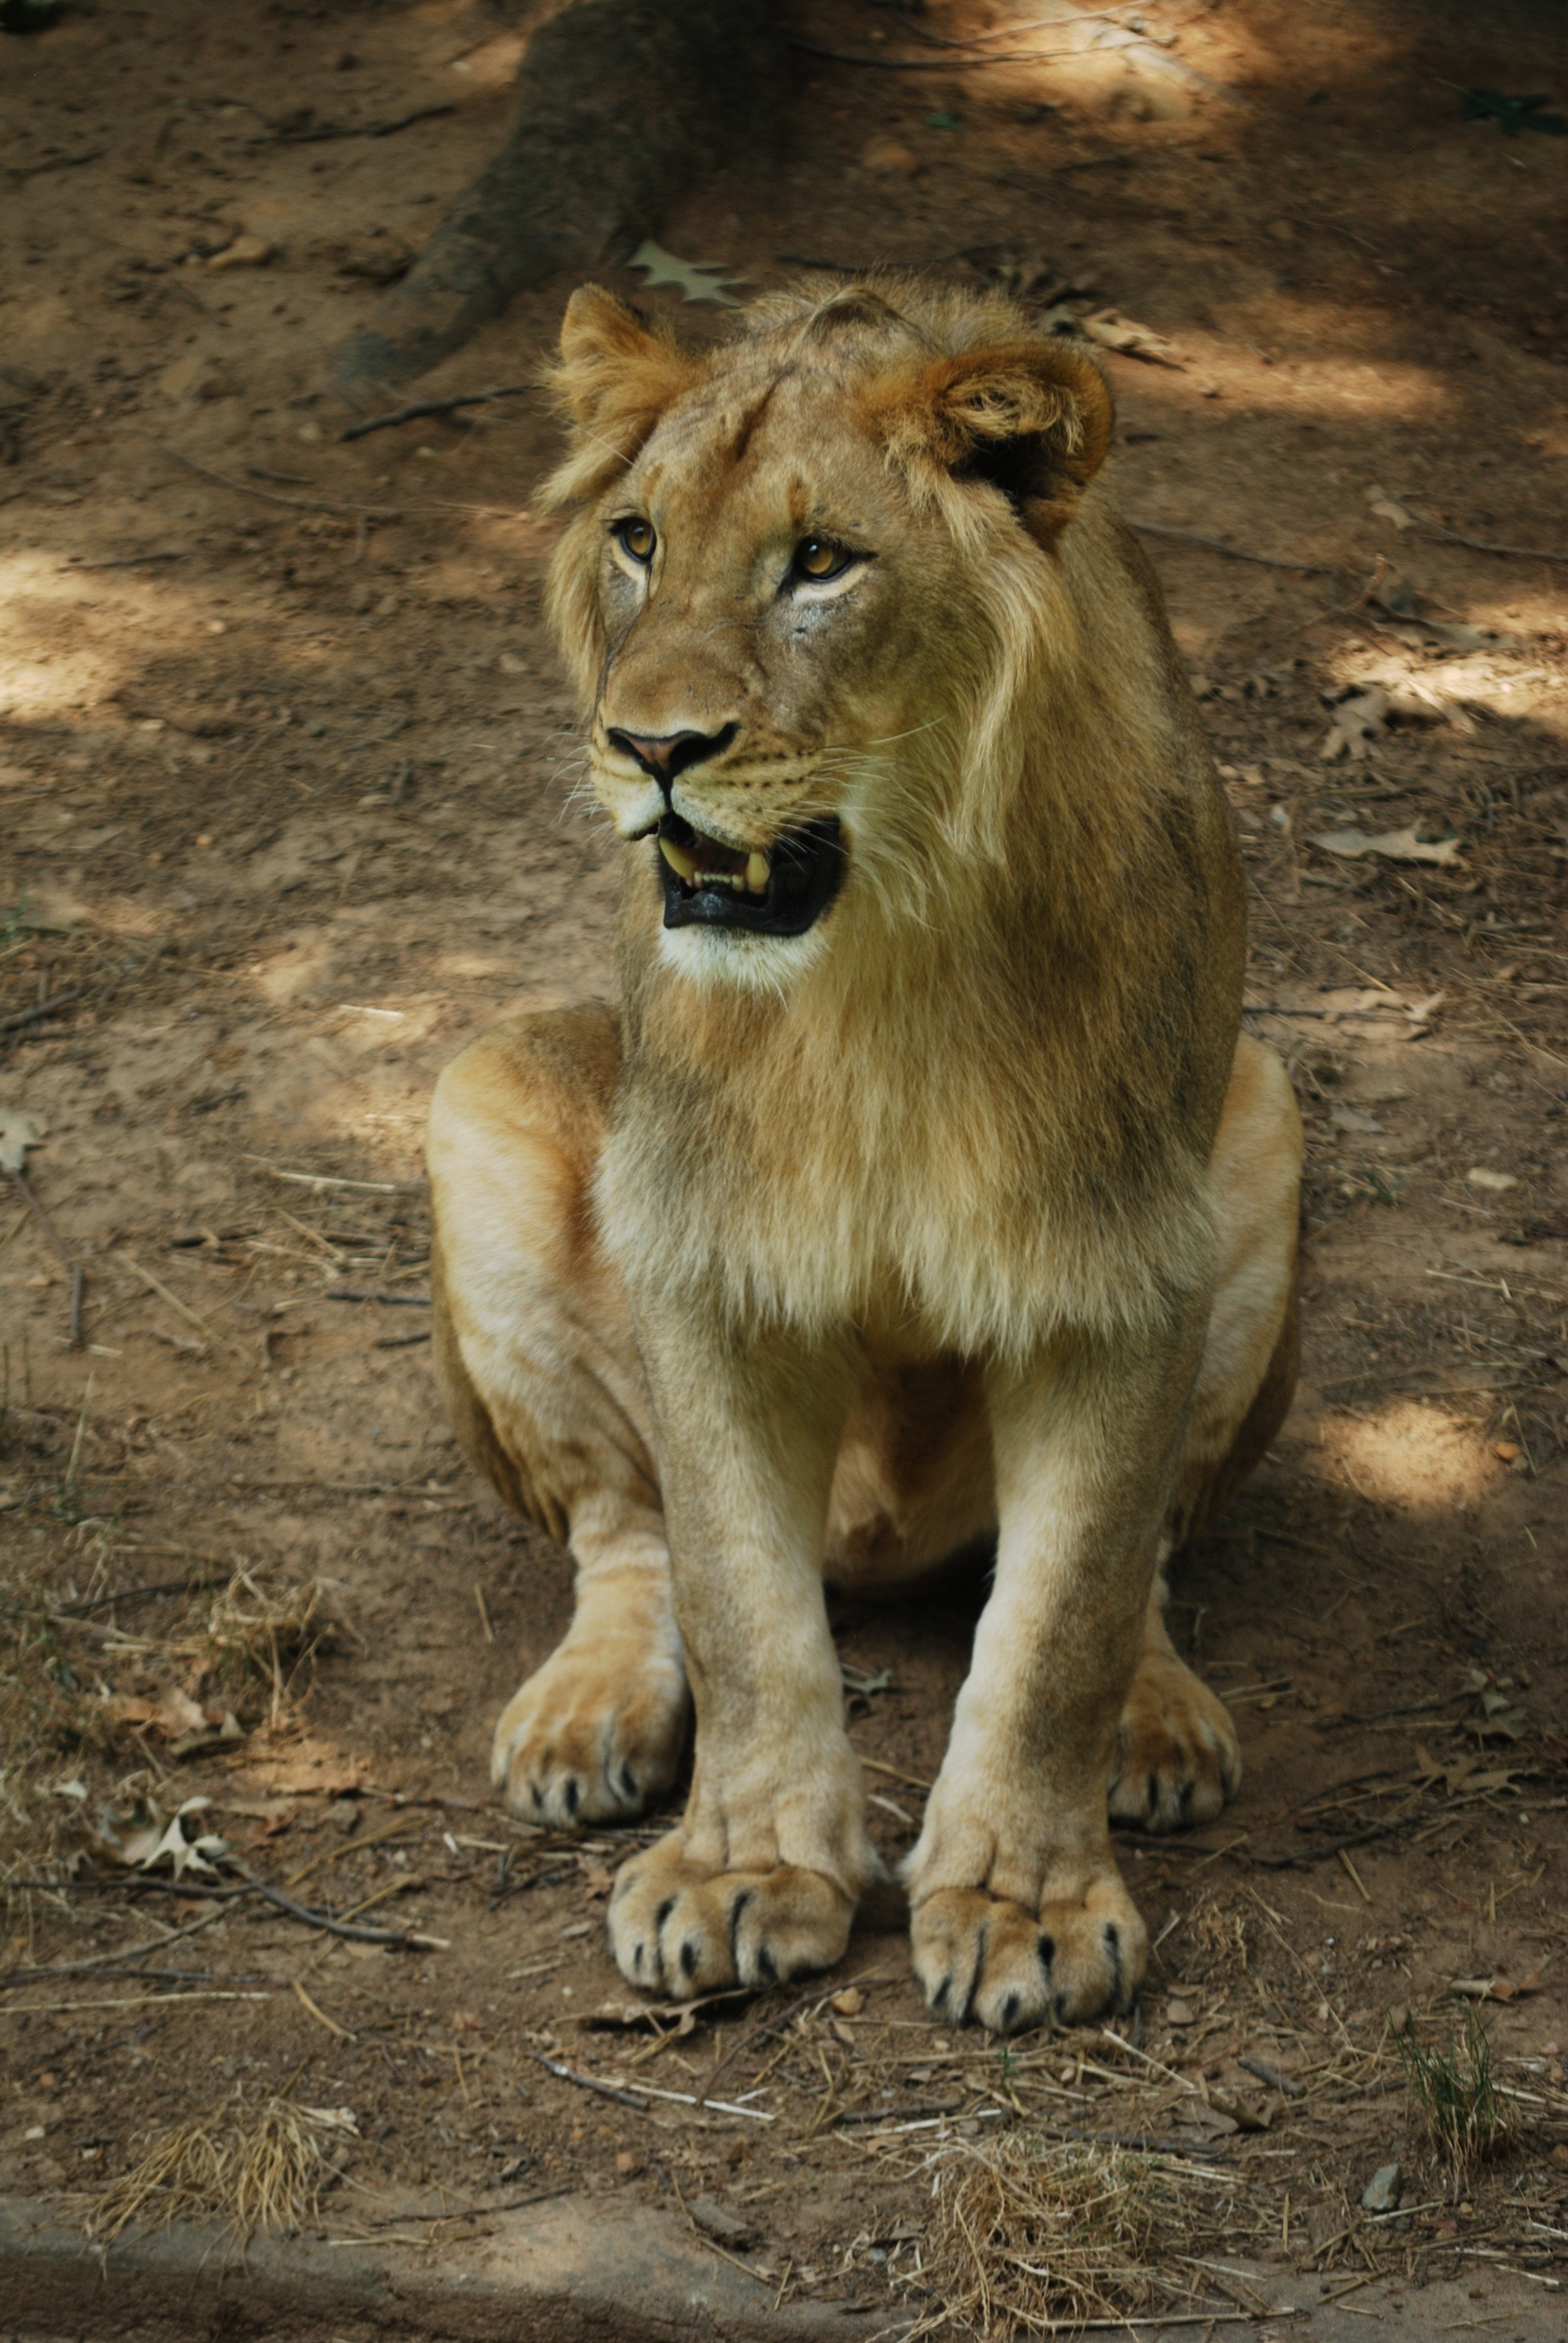 50598 download wallpaper Animals, Lion, Mane, Fangs, Predator screensavers and pictures for free